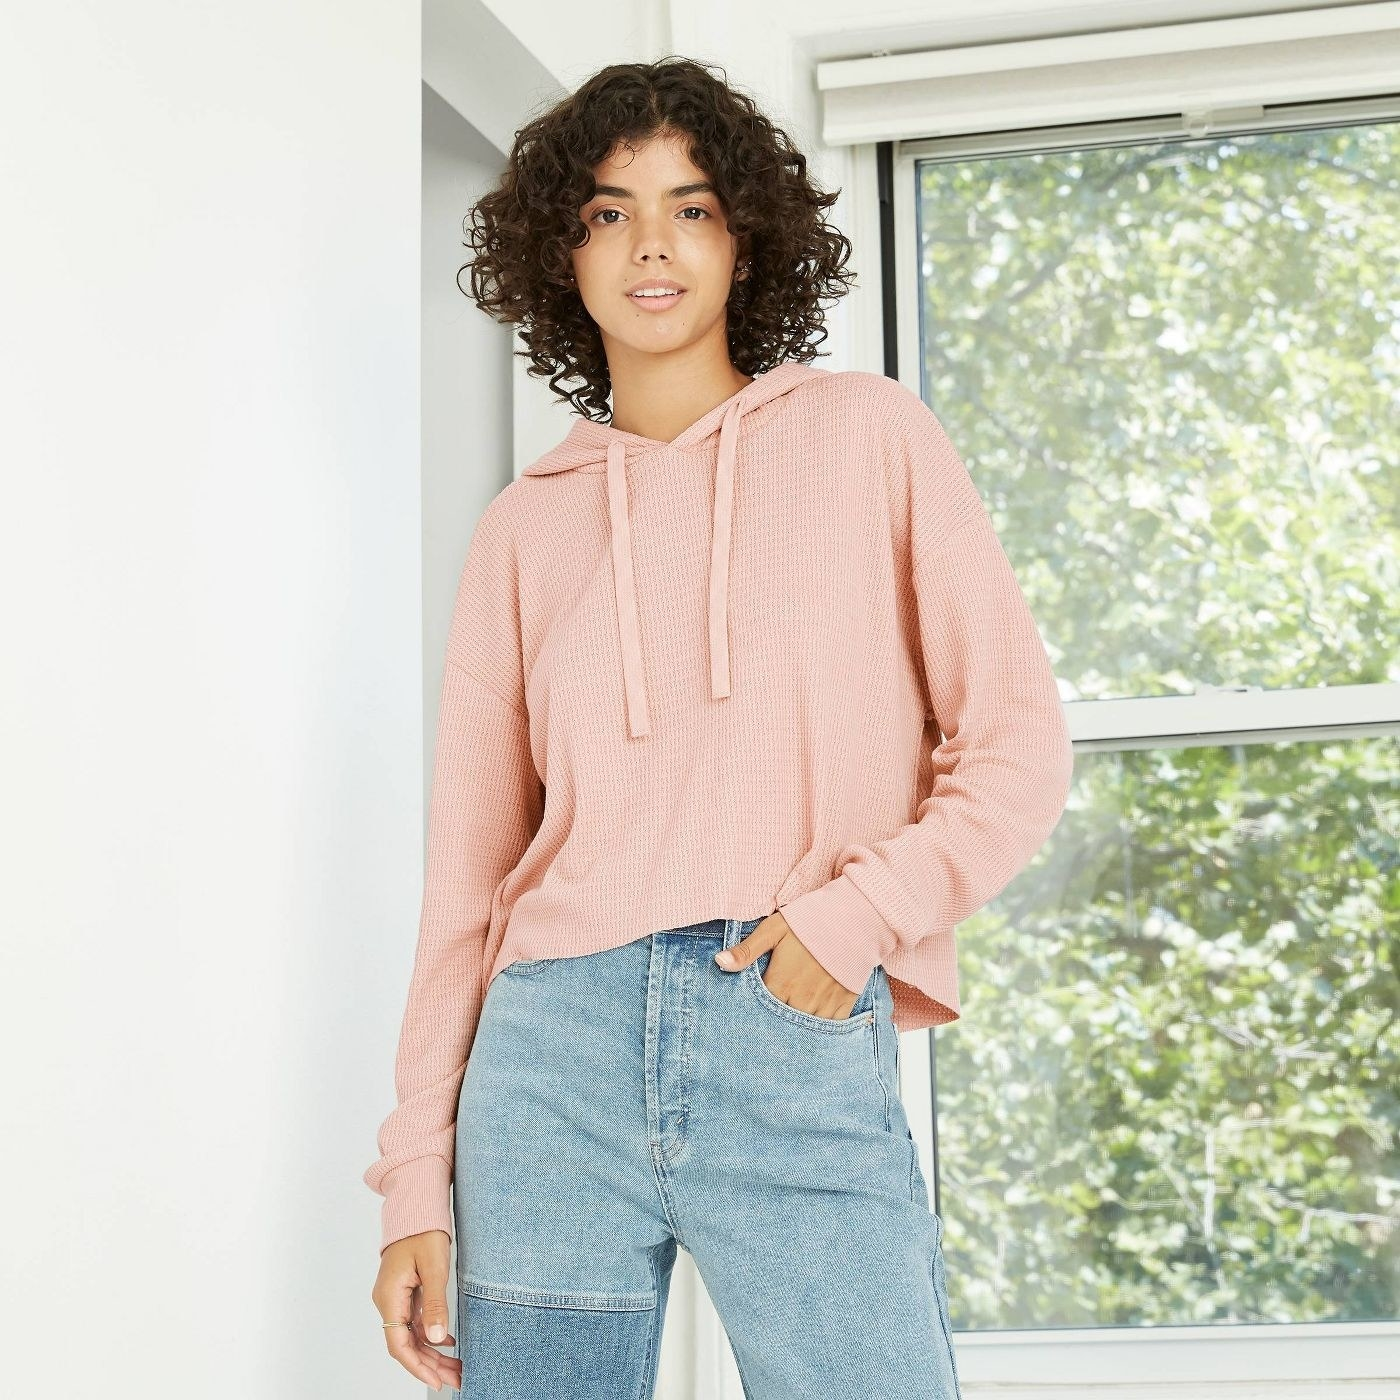 model wearing pink pullover